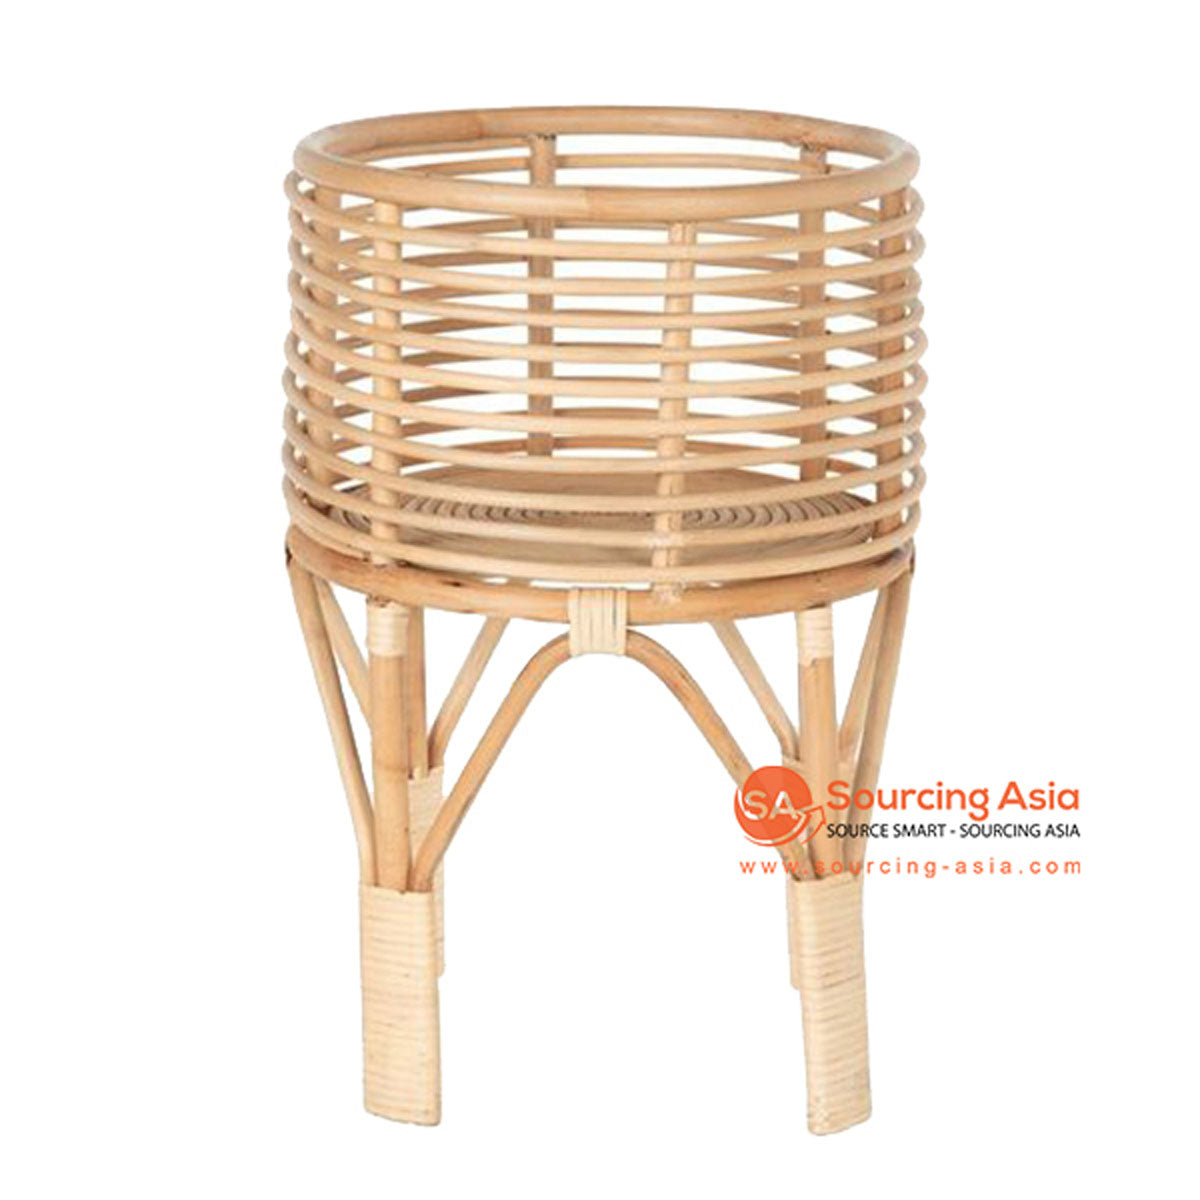 SHL087 NATURAL RATTAN ROUND PLANTER